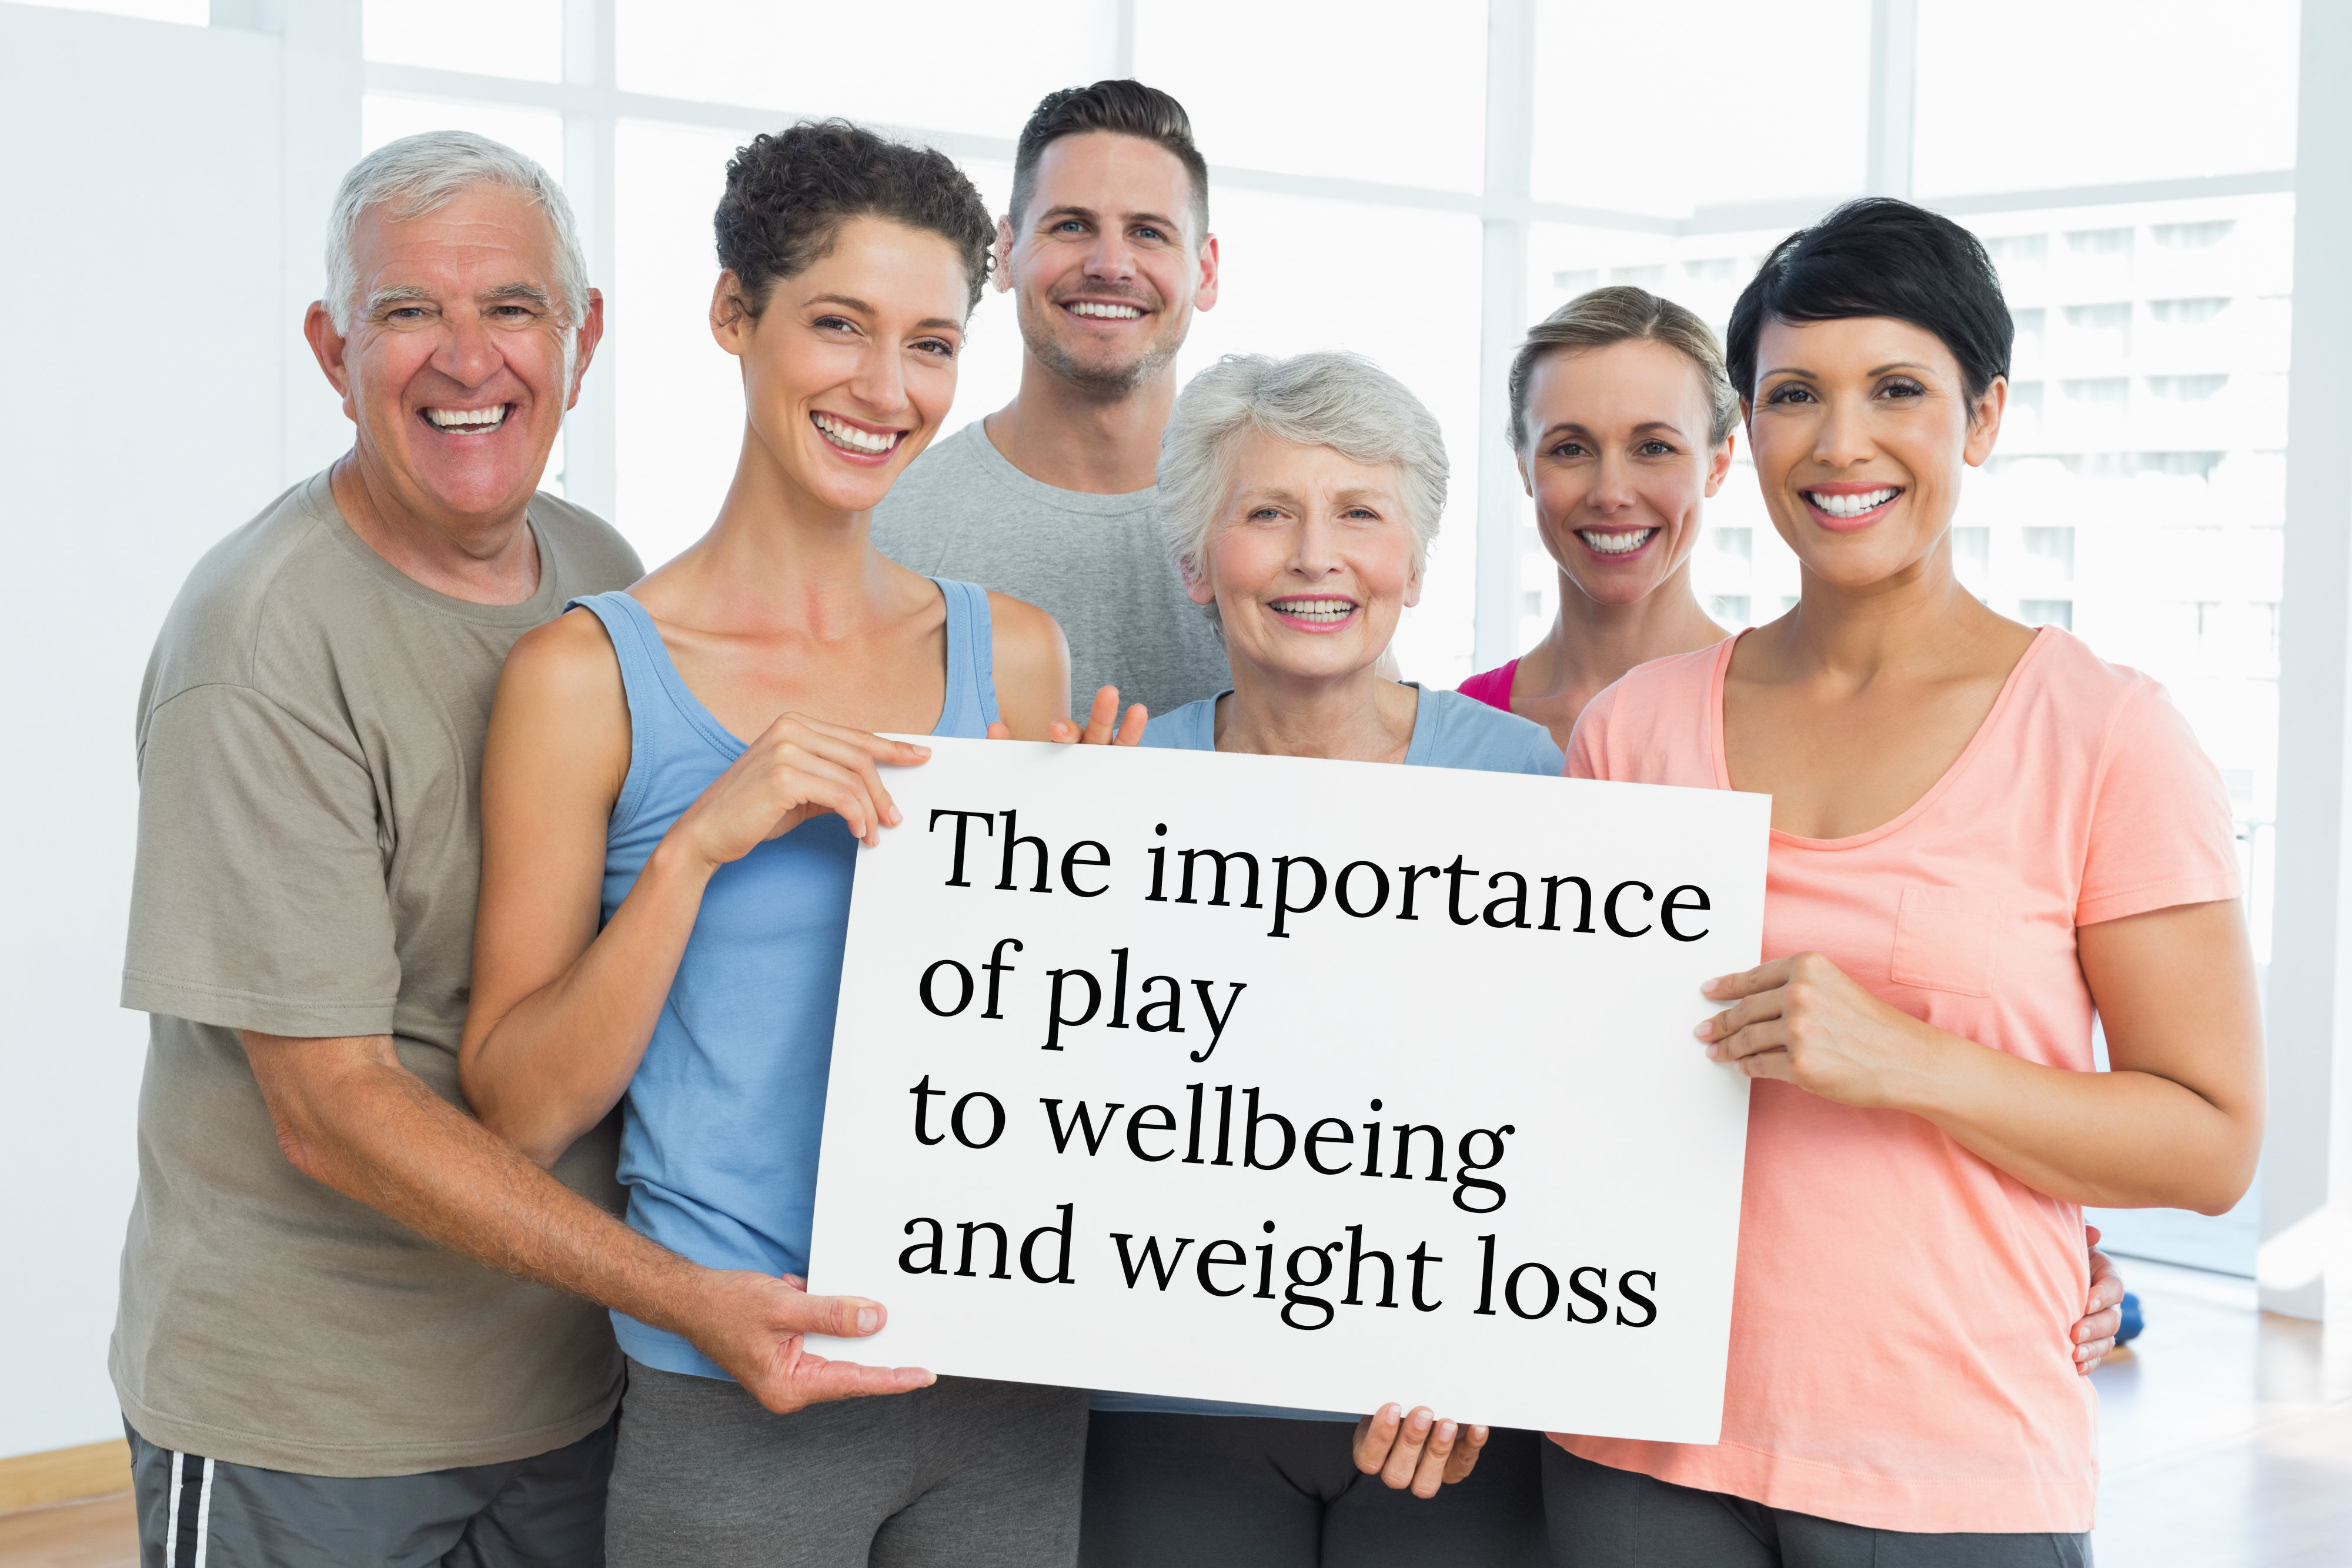 The importance of play to wellbeing and weight loss